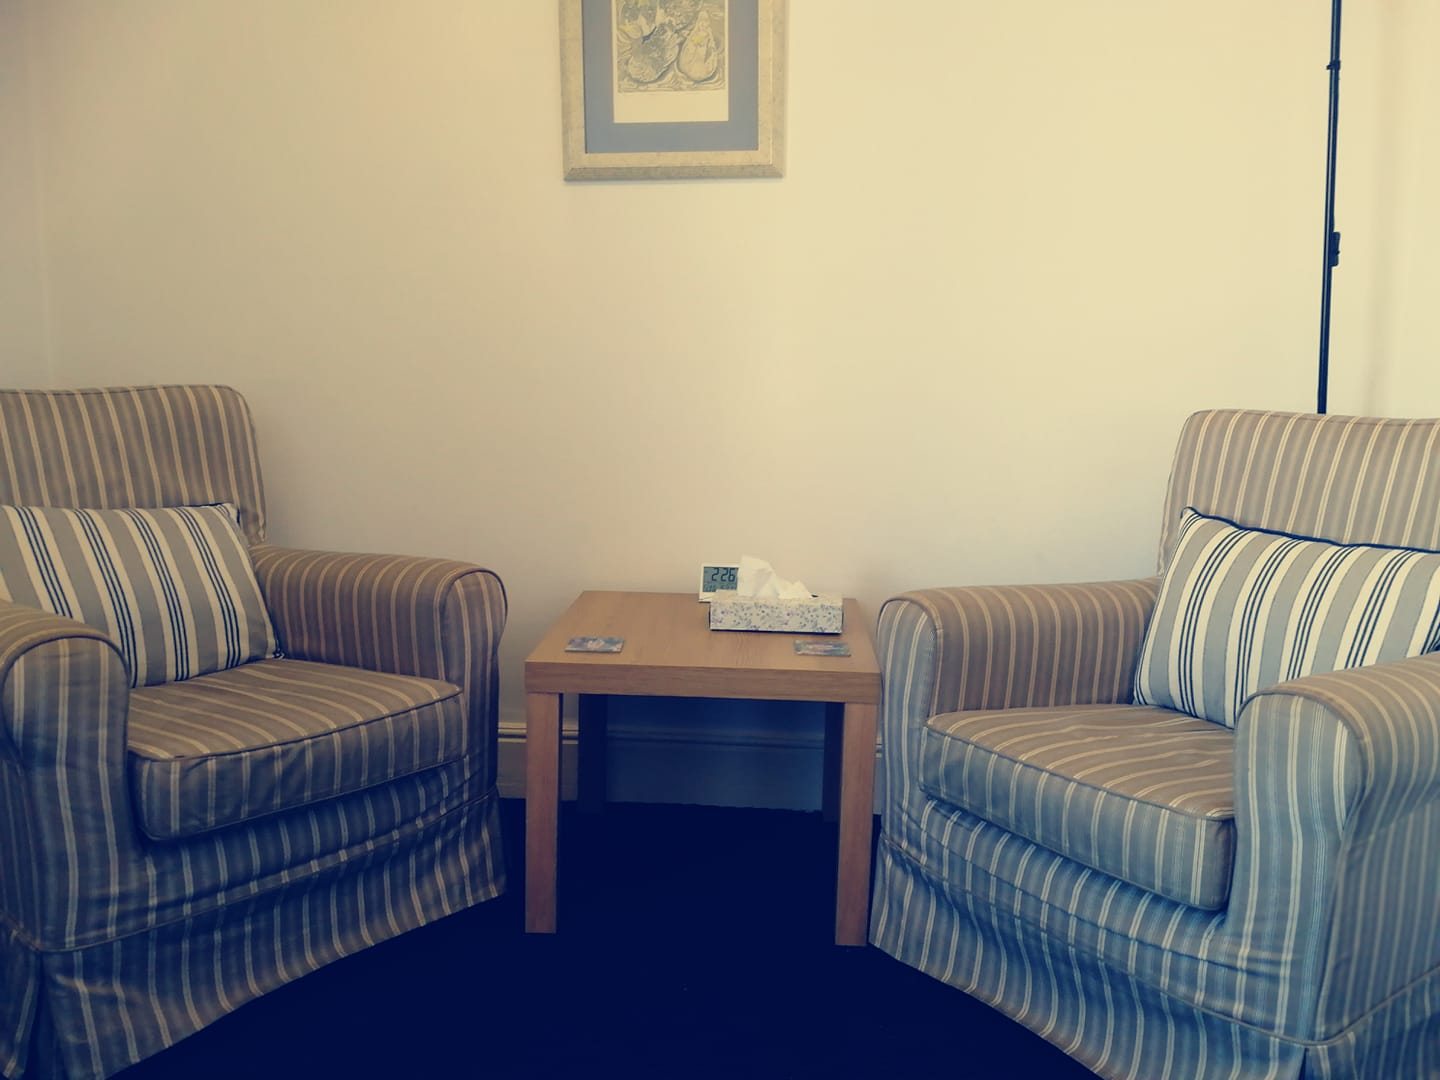 Cardiff counselling room